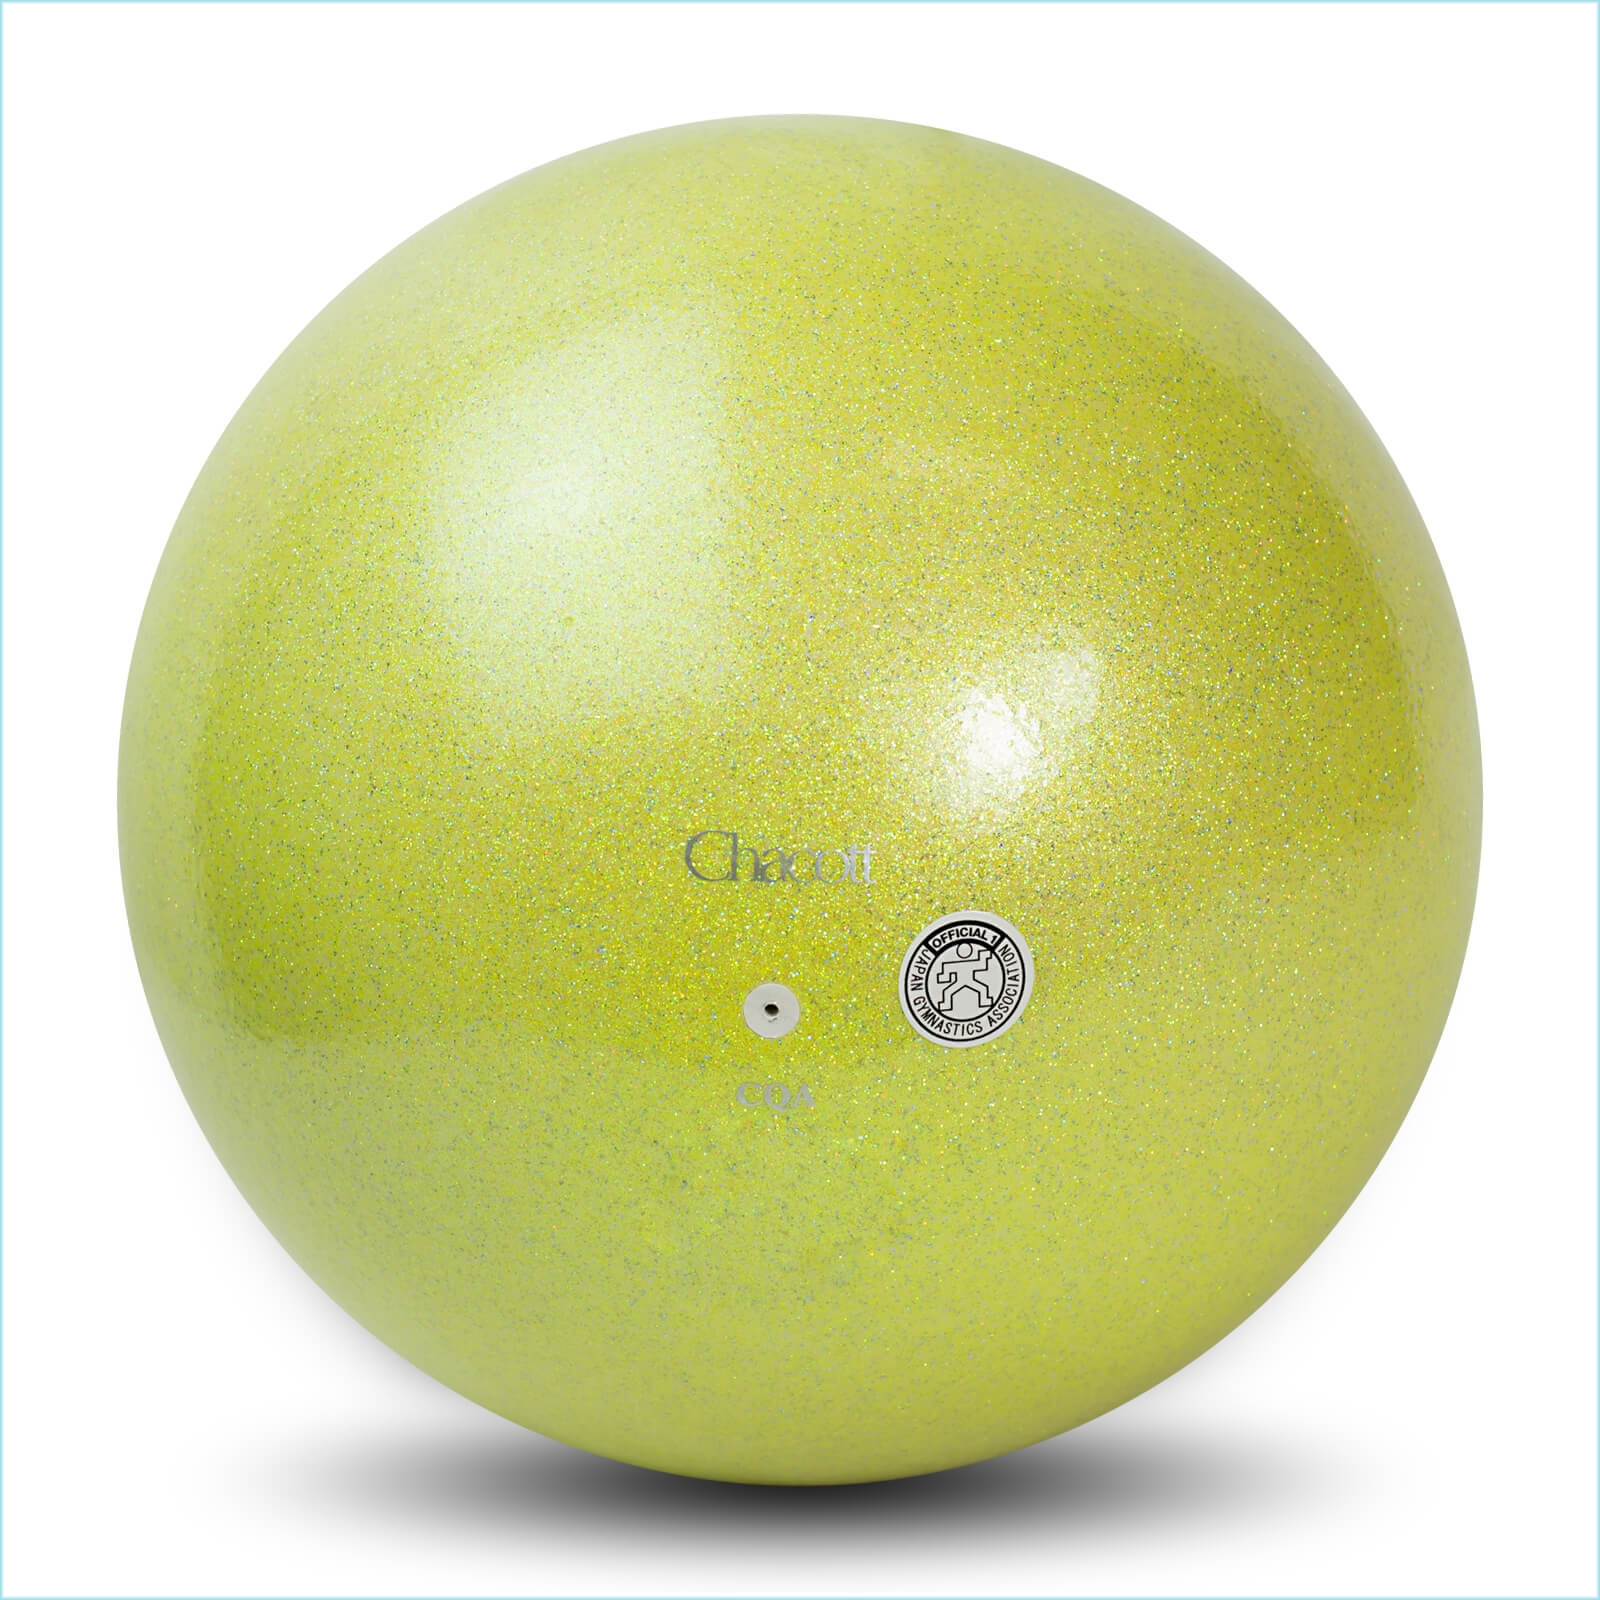 ball chacott prism 17cm lime yellow 632